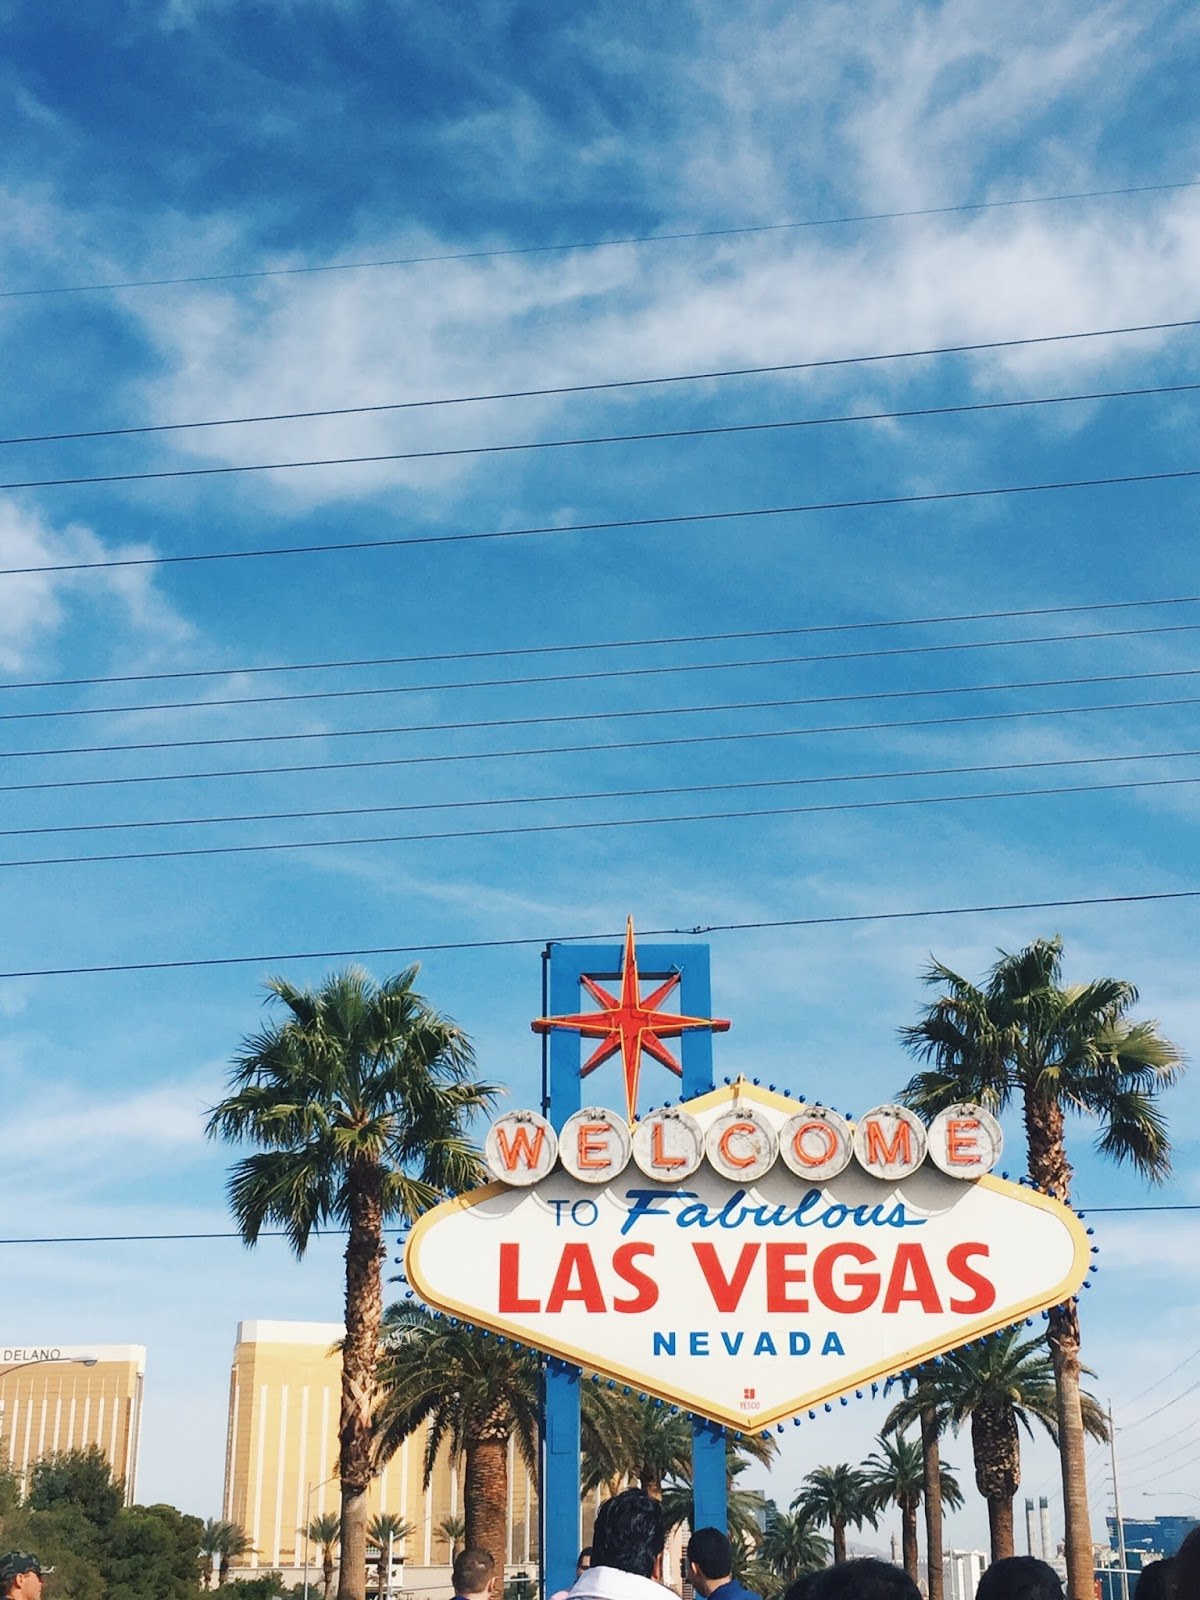 Thinking about cool things to do whilst in Las Vegas? Me too! Find out what I'll be getting up to in this post.